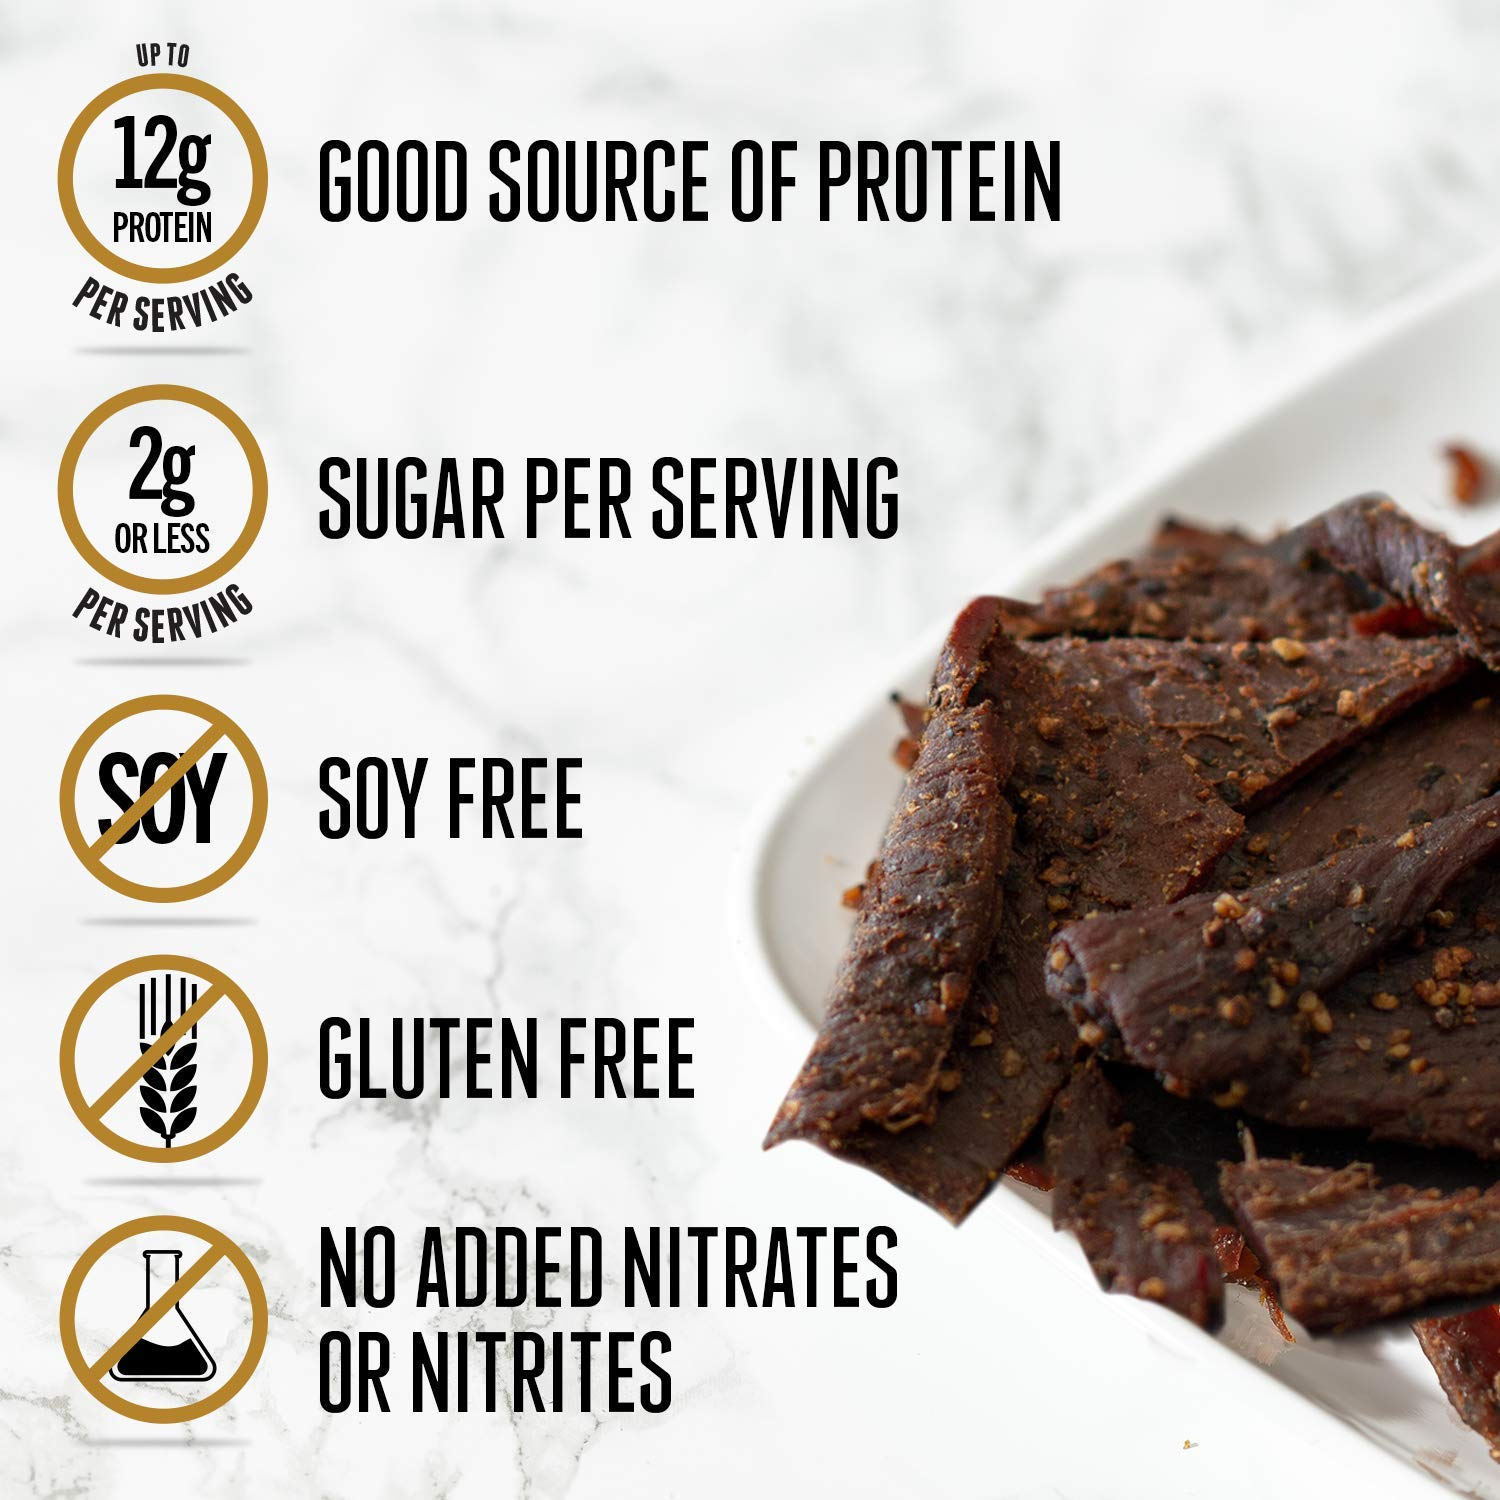 Perky Jerky Sea Salt and Pepper Wagyu Beef Jerky, 2.2 oz (Pack of 8) High-Protein Snack-12g of Protein-Keto, Paleo, Soy & Gluten-Free, No Added Sodium Nitrites/Nitrates-Tender and Flavorful Beef Jerky by Perky Jerky (Image #8)